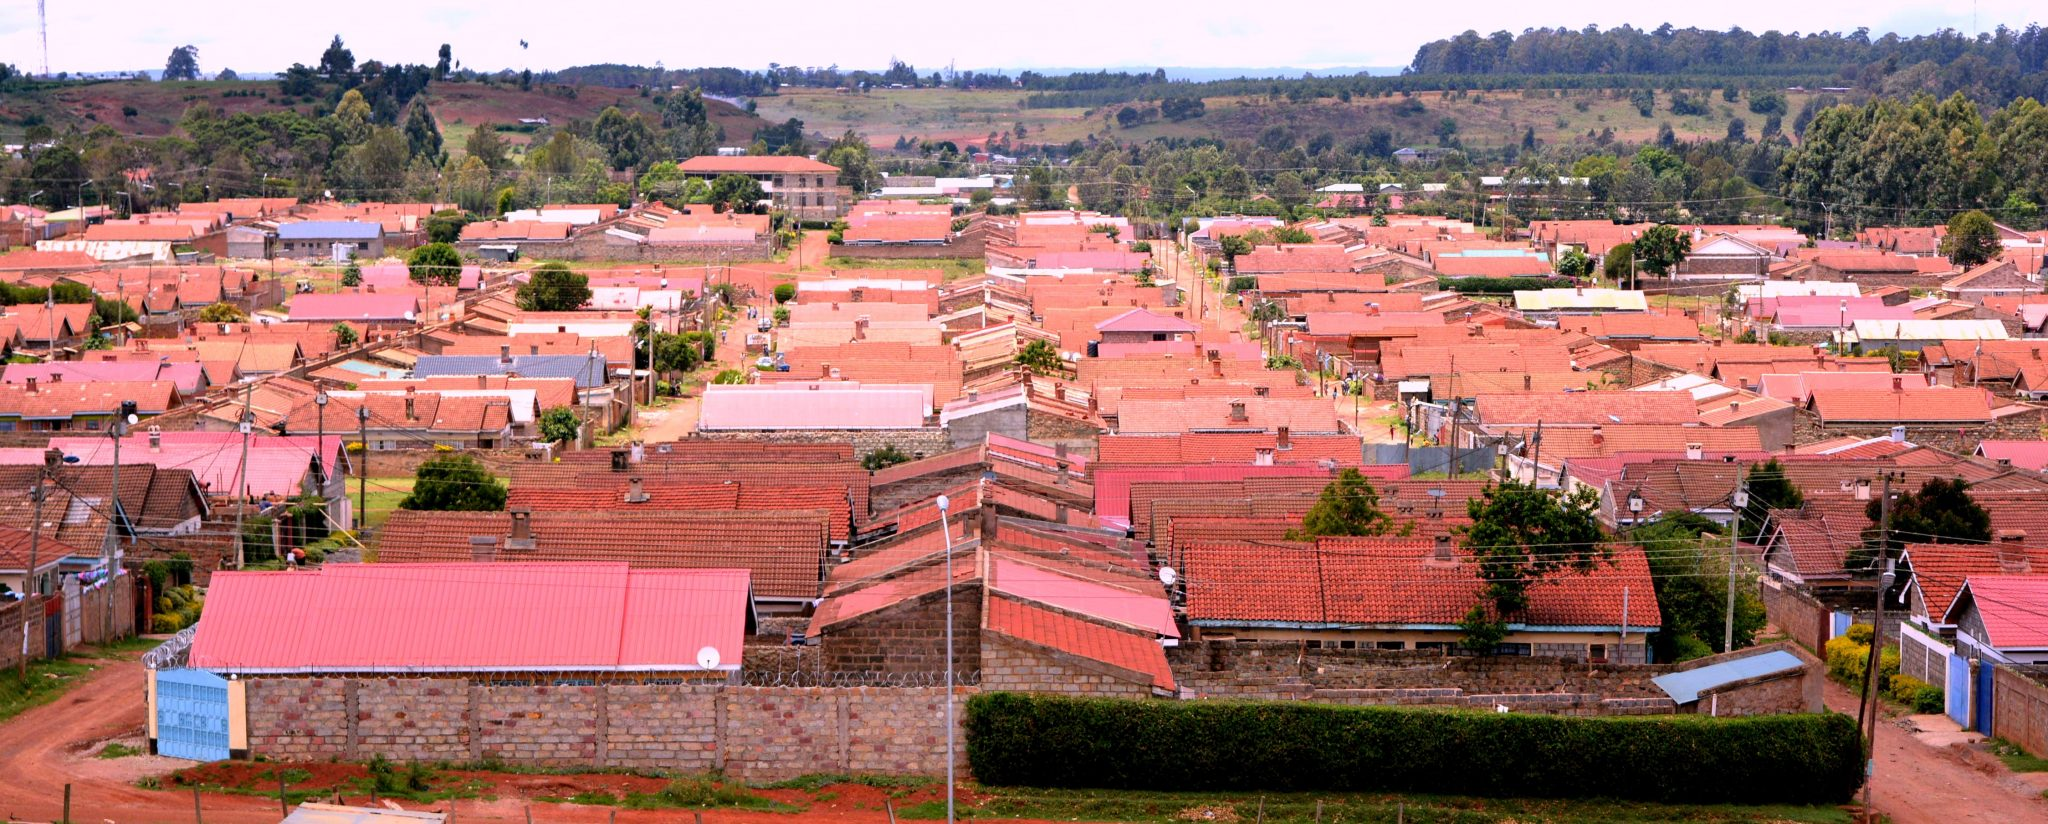 5 Most Affordable Estates To Live In Eldoret - Eldoret Leo Eldoret Kenyan Home Designs on canadian home designs, two story home designs, croatian home designs, syrian home designs, popular home designs, polish home designs, guyanese home designs, hungarian home designs, kenya house plans and designs, ugandan home designs, rwandan home designs, kenya architectural designs, bosnian home designs, 2015 home designs, kenya new house plan designs, serbian home designs, new england home designs, stylish eve home designs, italian home designs, zambian home designs,